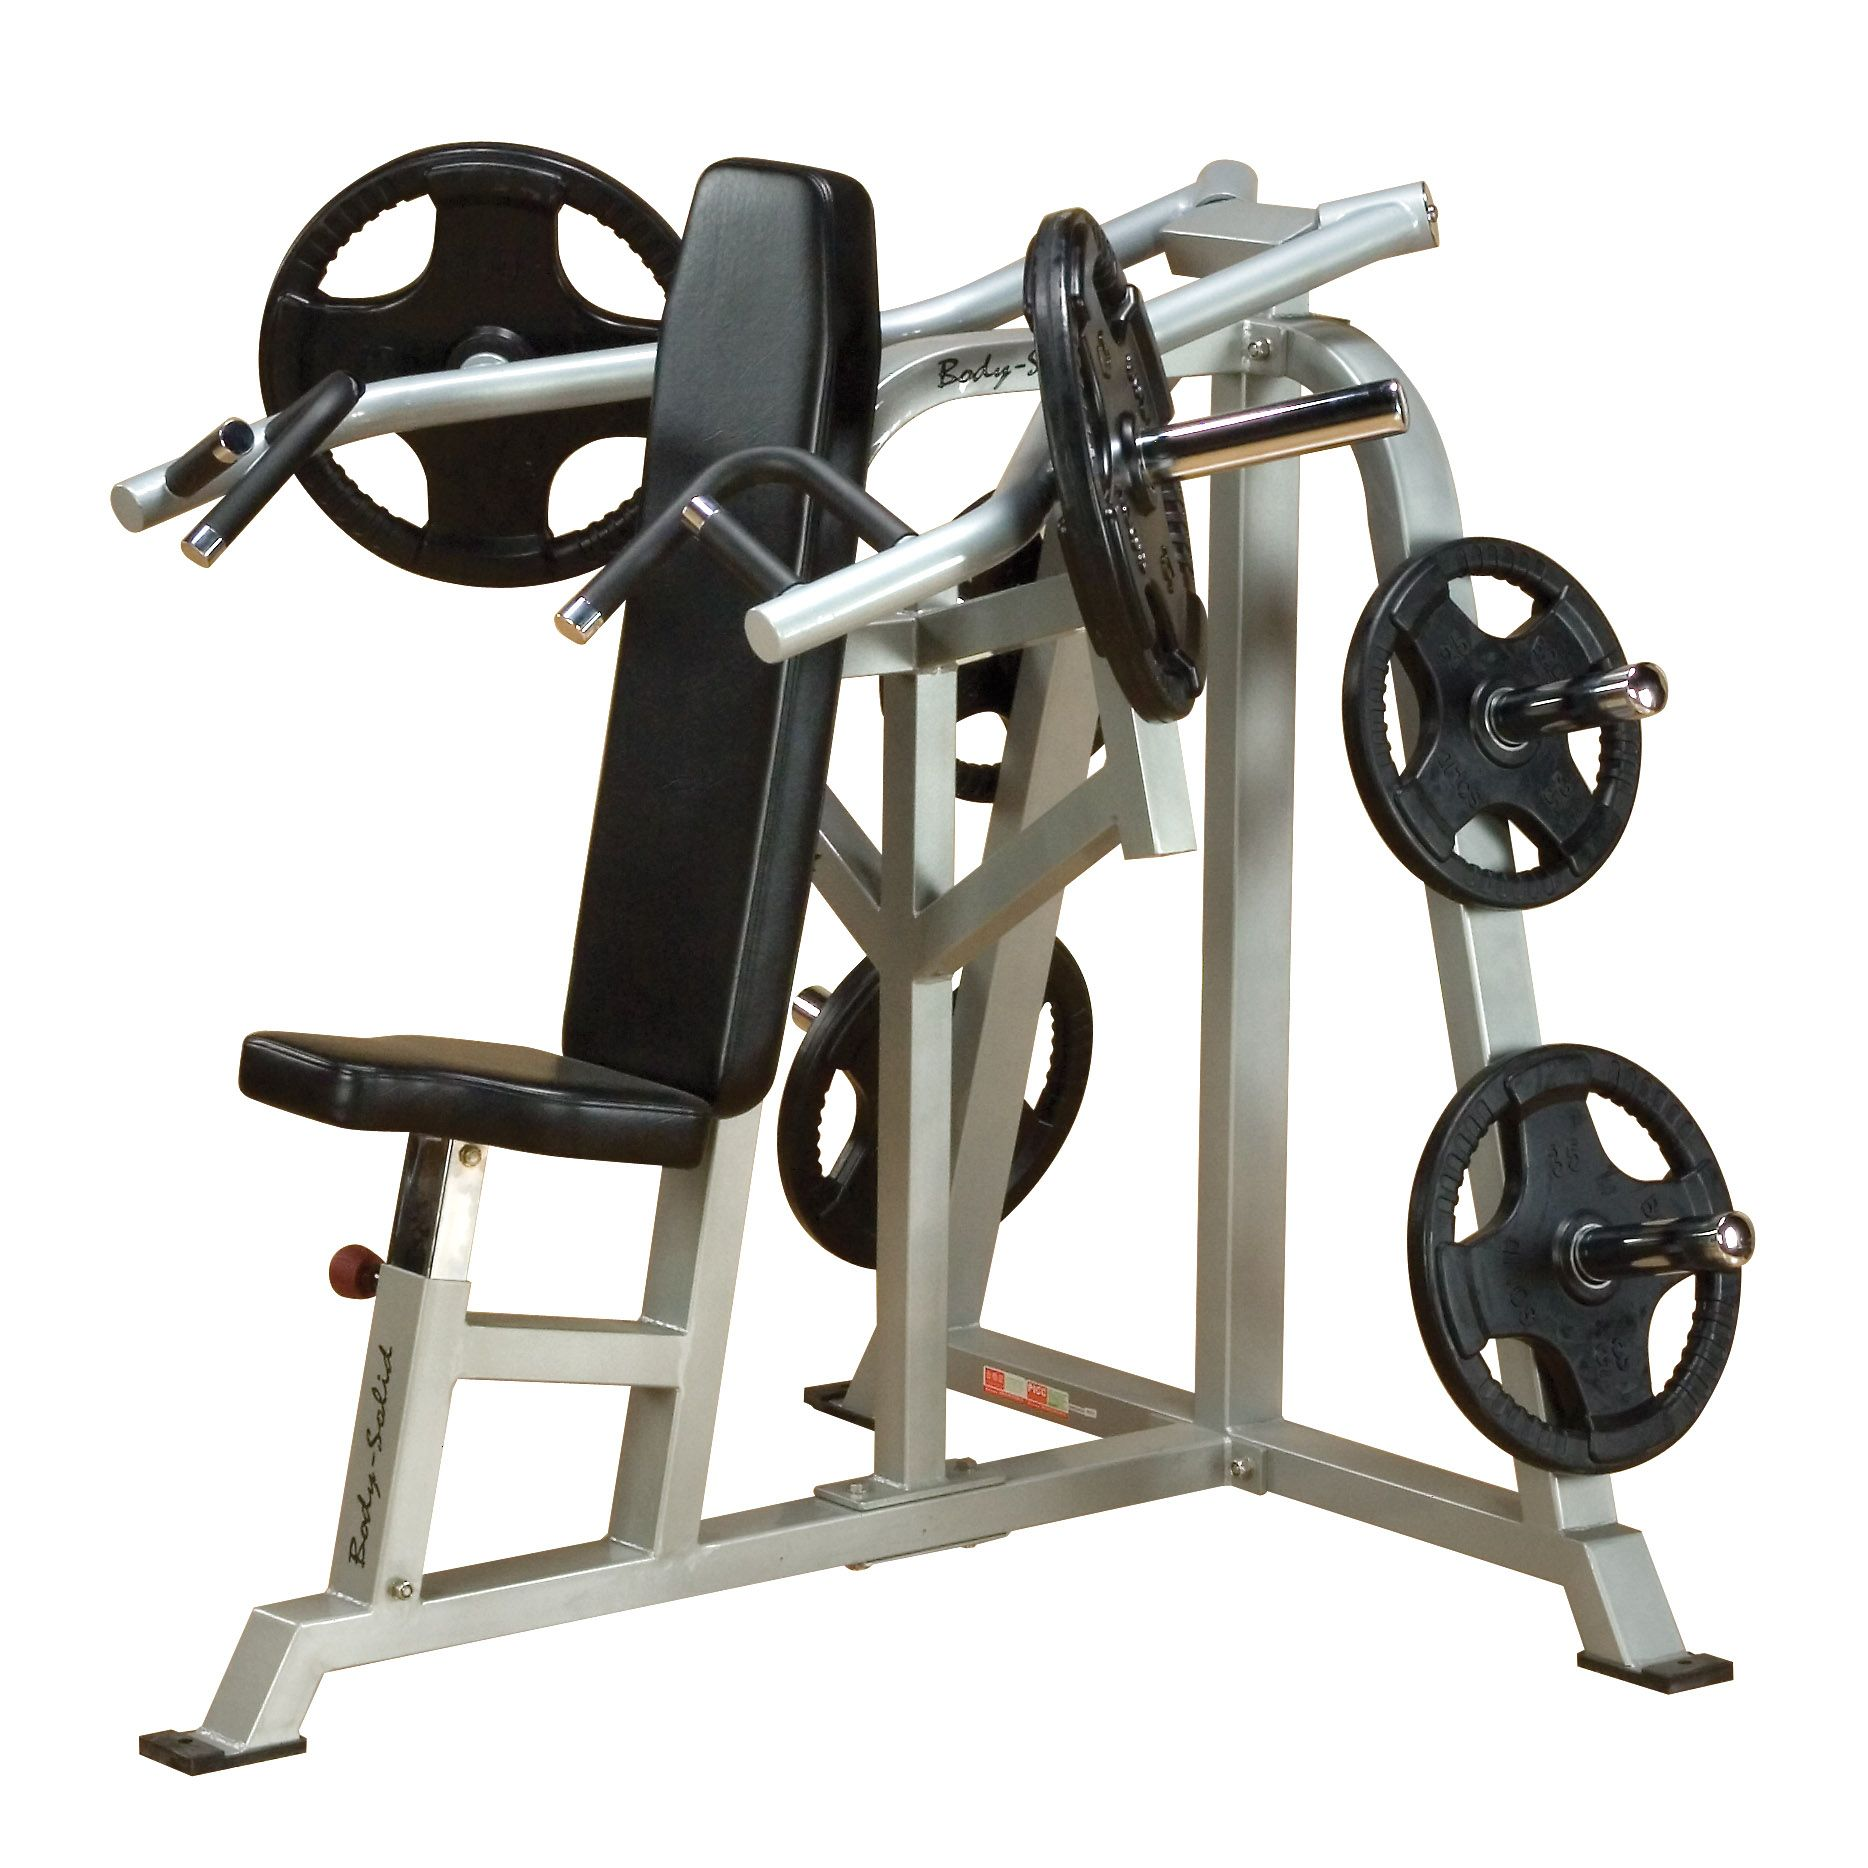 Fitness Equipment Upholstery: Body Solid Home Gym Equipment This Looks Insightful. Take